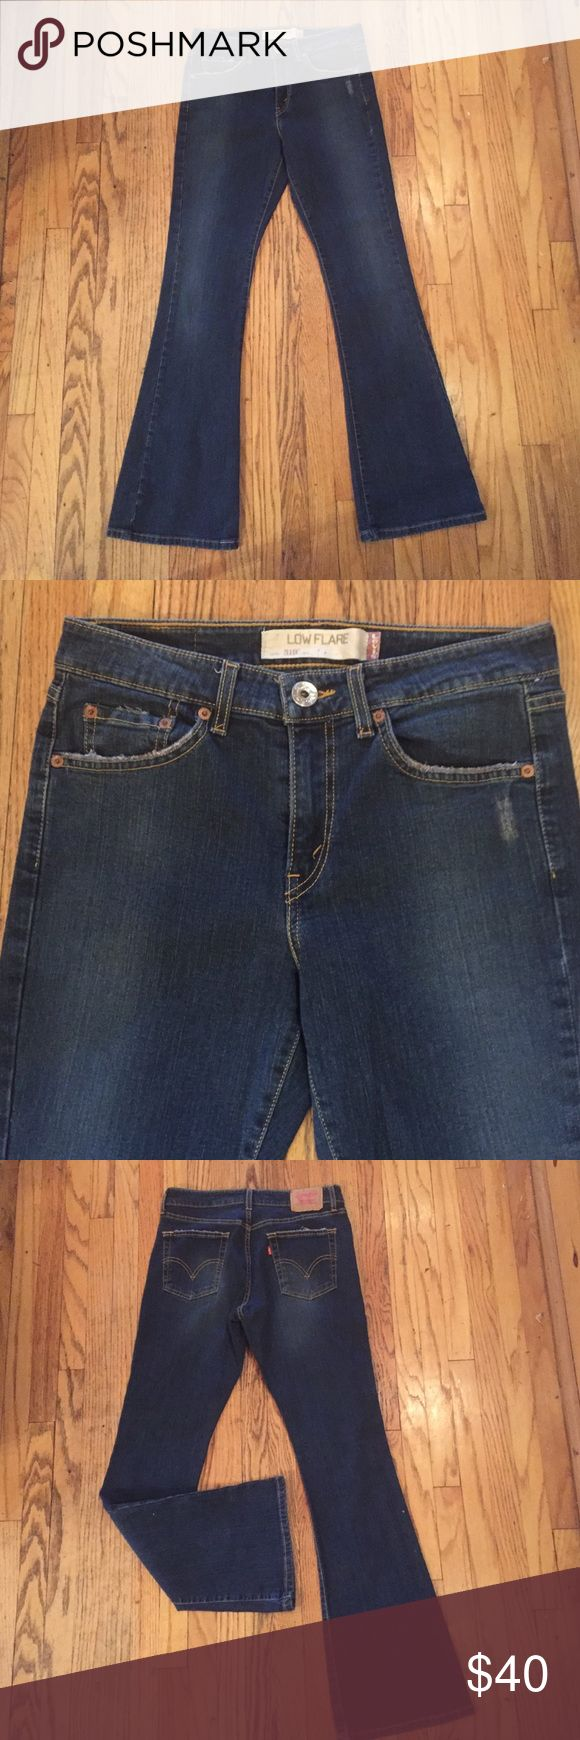 """Levi's 519 low flare, never worn! New, sits just below waist, 31"""" inseam Levi's Pants Boot Cut & Flare"""